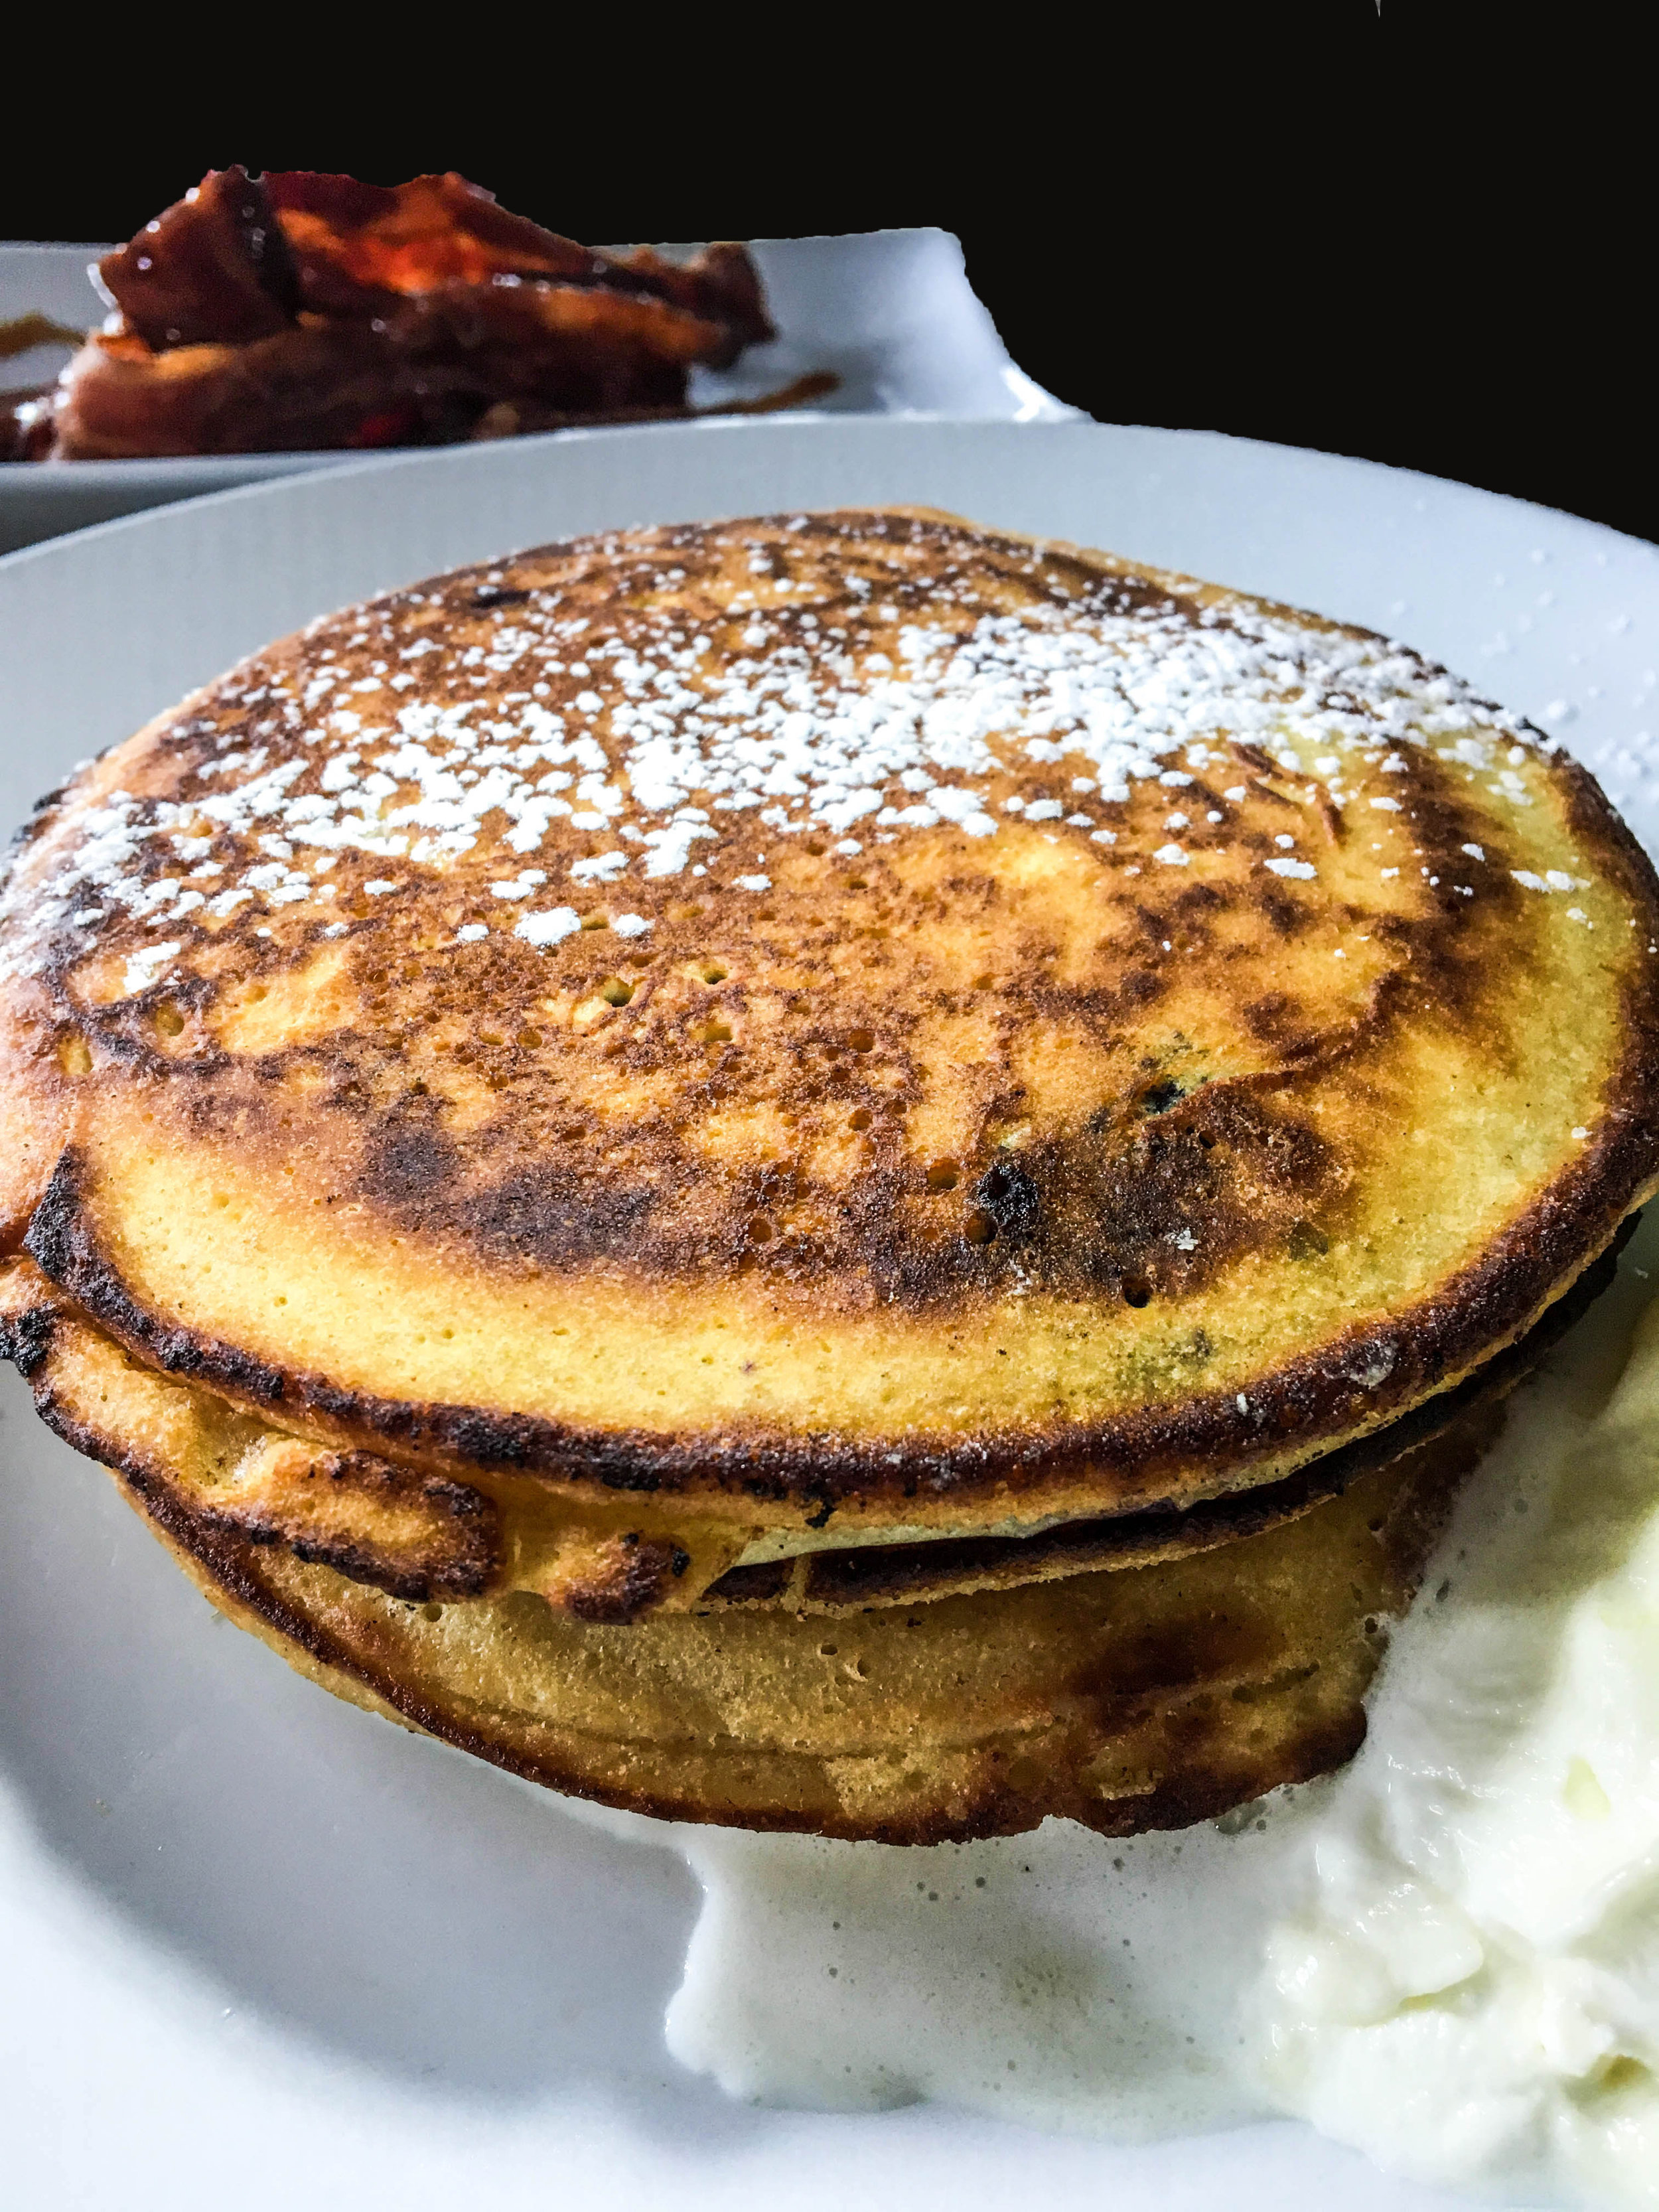 Blueberry & Ricotta Corn Cakes - Cornmeal and ricotta pancakes with blueberries, thyme, lemon zest,served with fresh ricotta.  Side order of Bourbon Glazed Bacon.